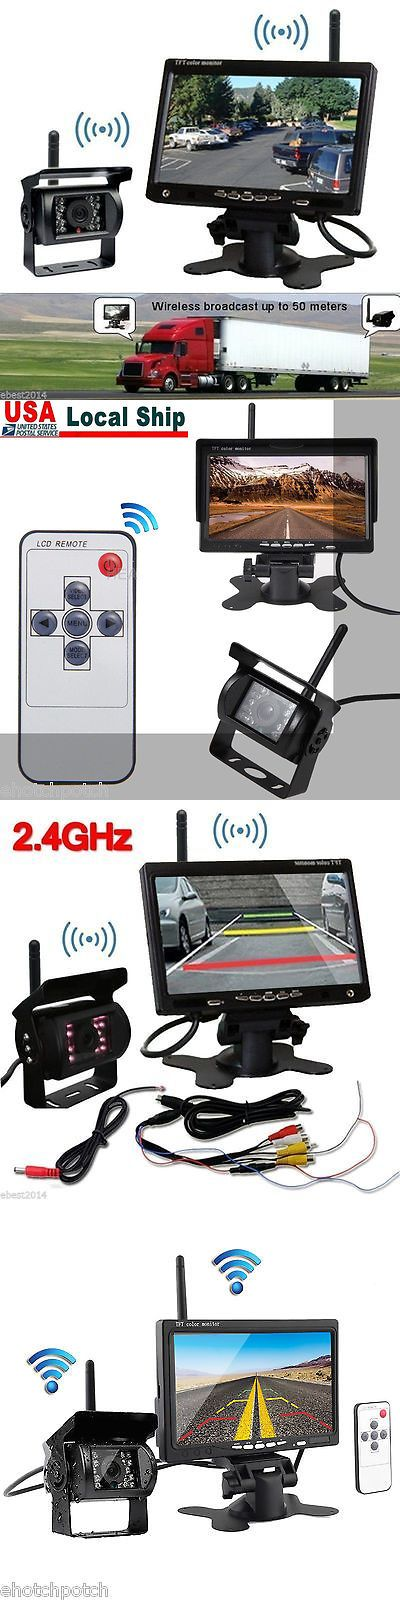 Rear View Monitors Cams and Kits: Digital Wireless Rear View Backup Camera System 7 Lcd For Rv Camper Trailer BUY IT NOW ONLY: $58.99